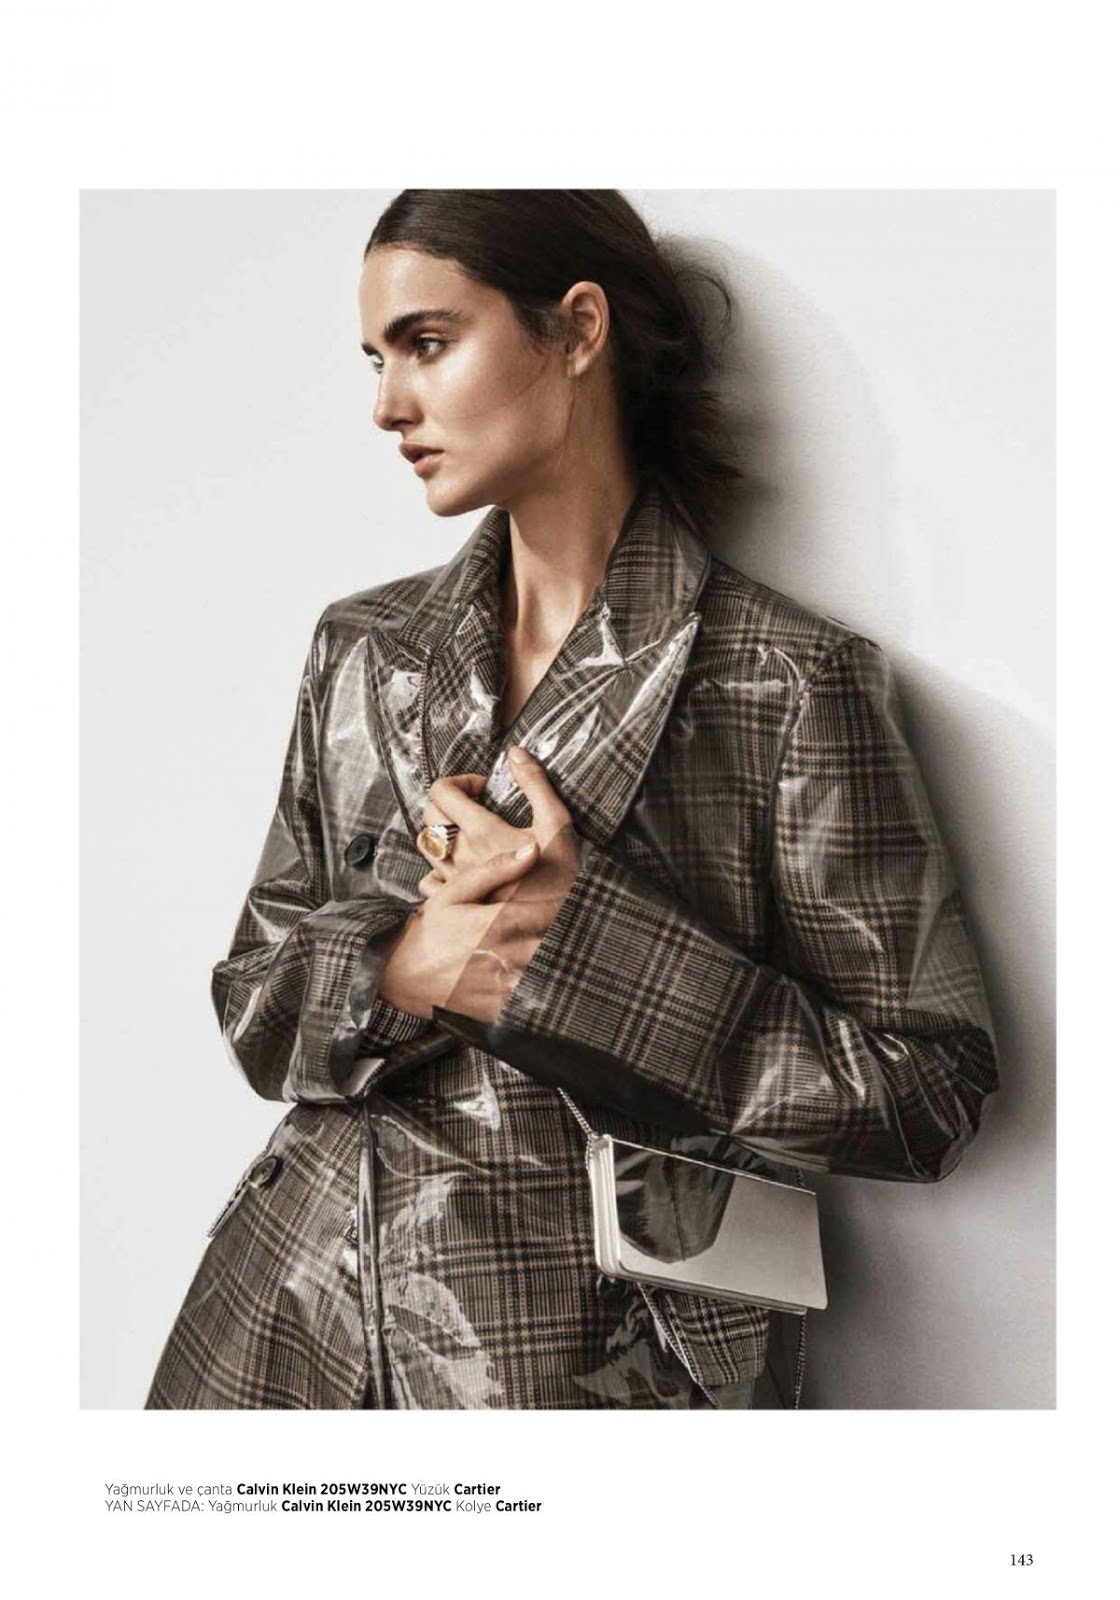 Full HD Wallpapers & Photos of Blanca Padilla for Harper's Bazaar Magazine Turkey January 2018